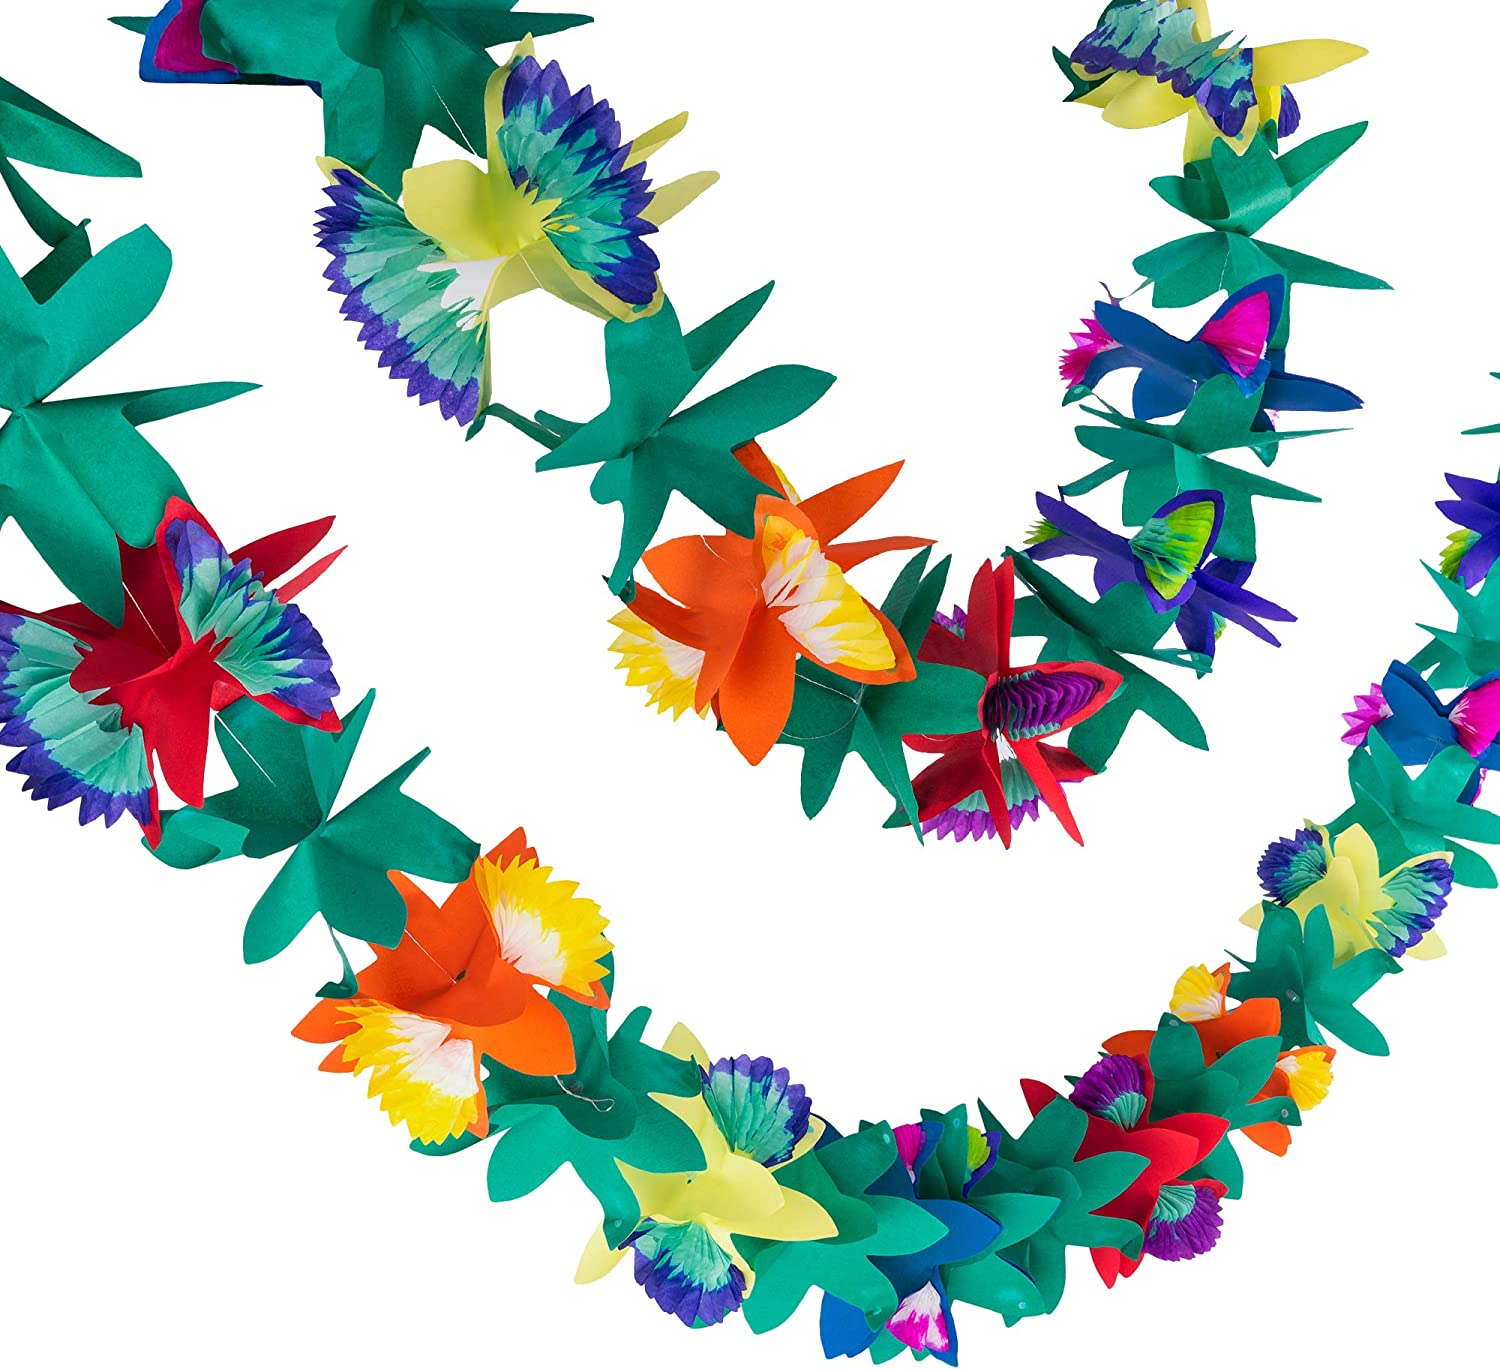 Super Z Outlet 9 Foot Paper Garland Tropical Hibiscus Decorations, Multicolored Tissue Flower Leaves Banner for Luau Party, Birthday, Hawaiian Theme